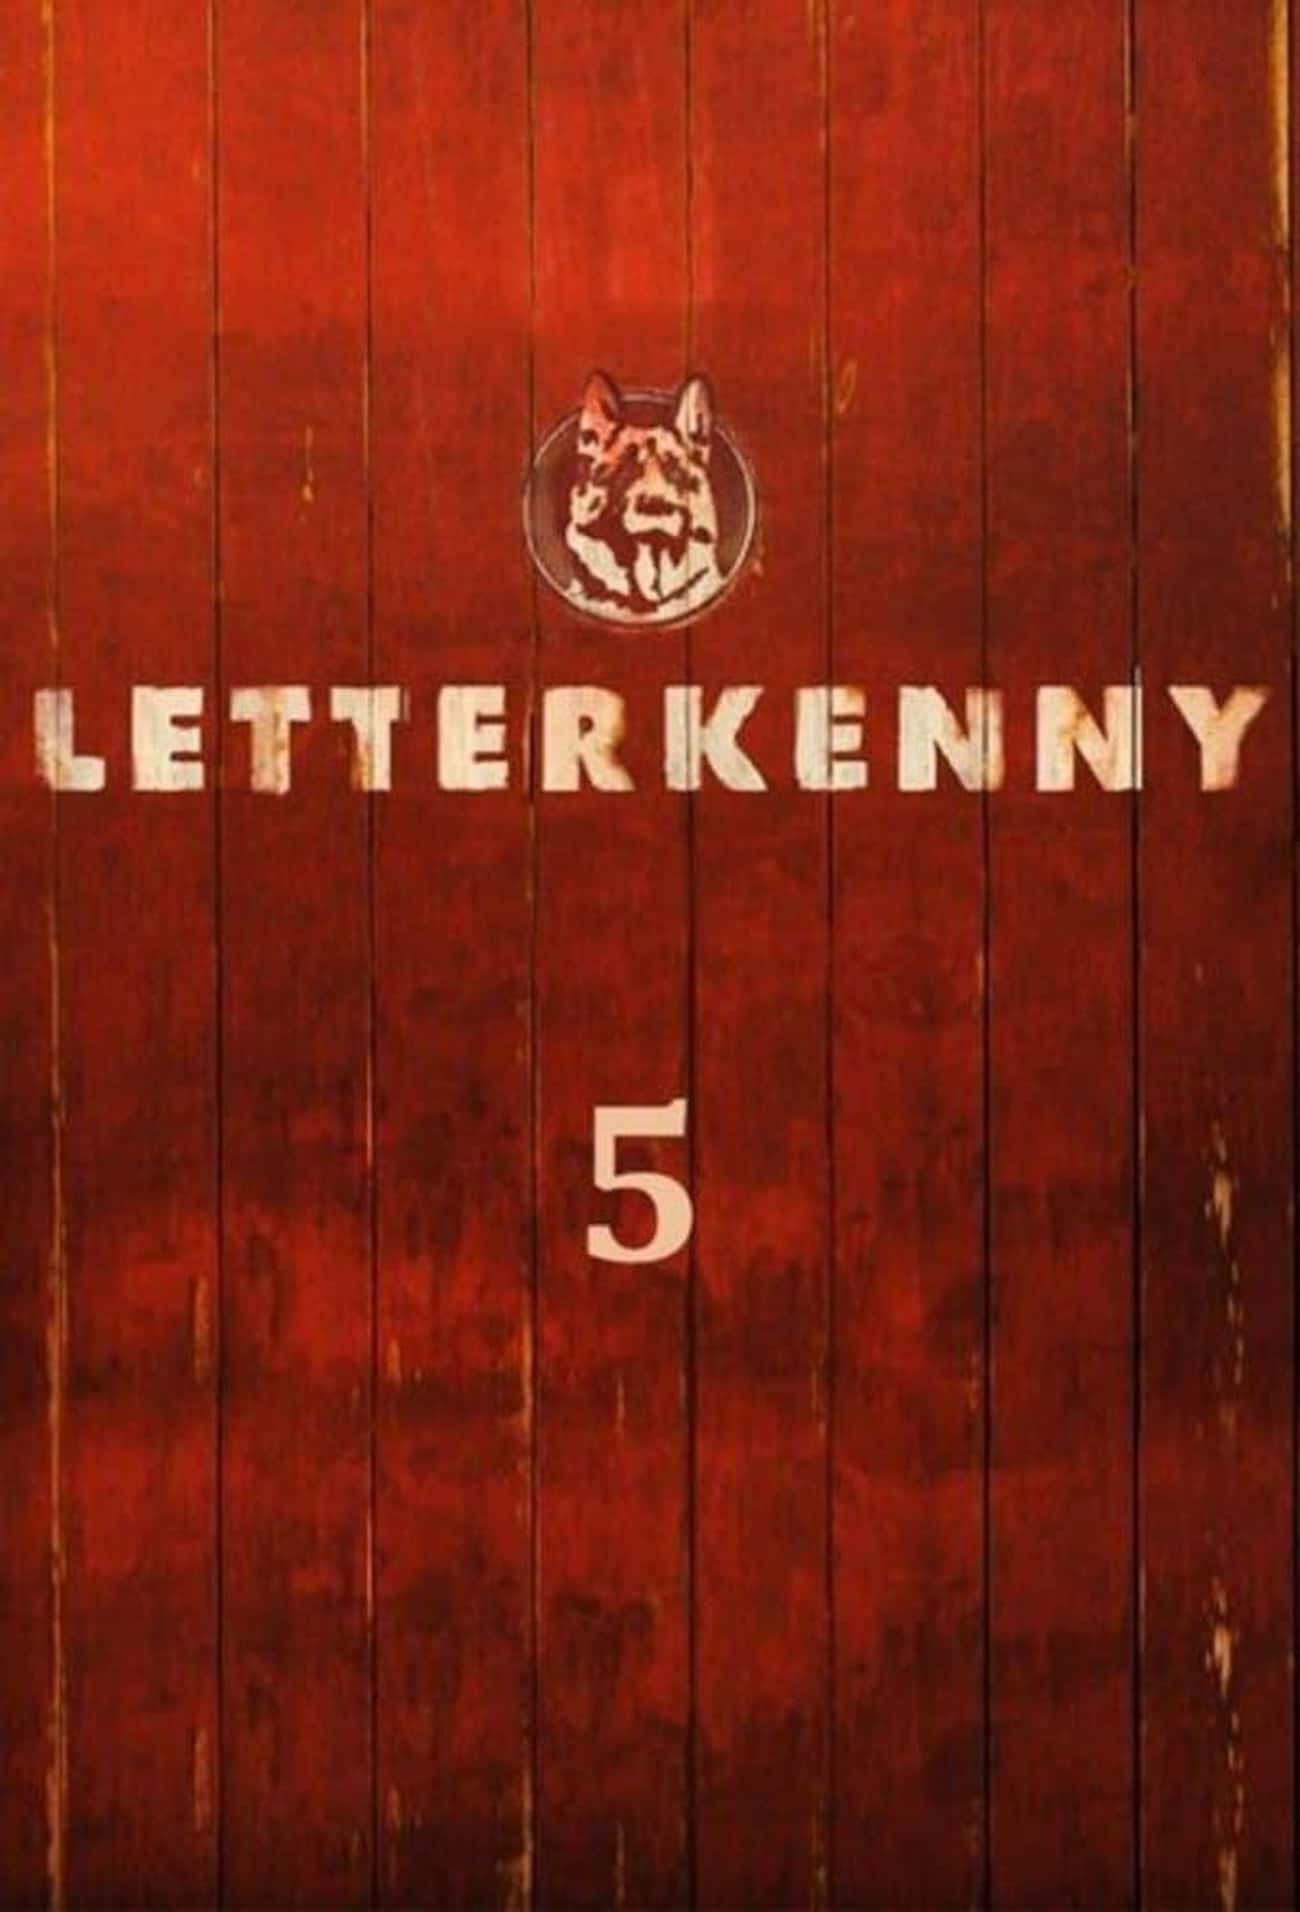 Letterkenny - Season 5 is listed (or ranked) 2 on the list Ranking The Best Seasons of 'Letterkenny'